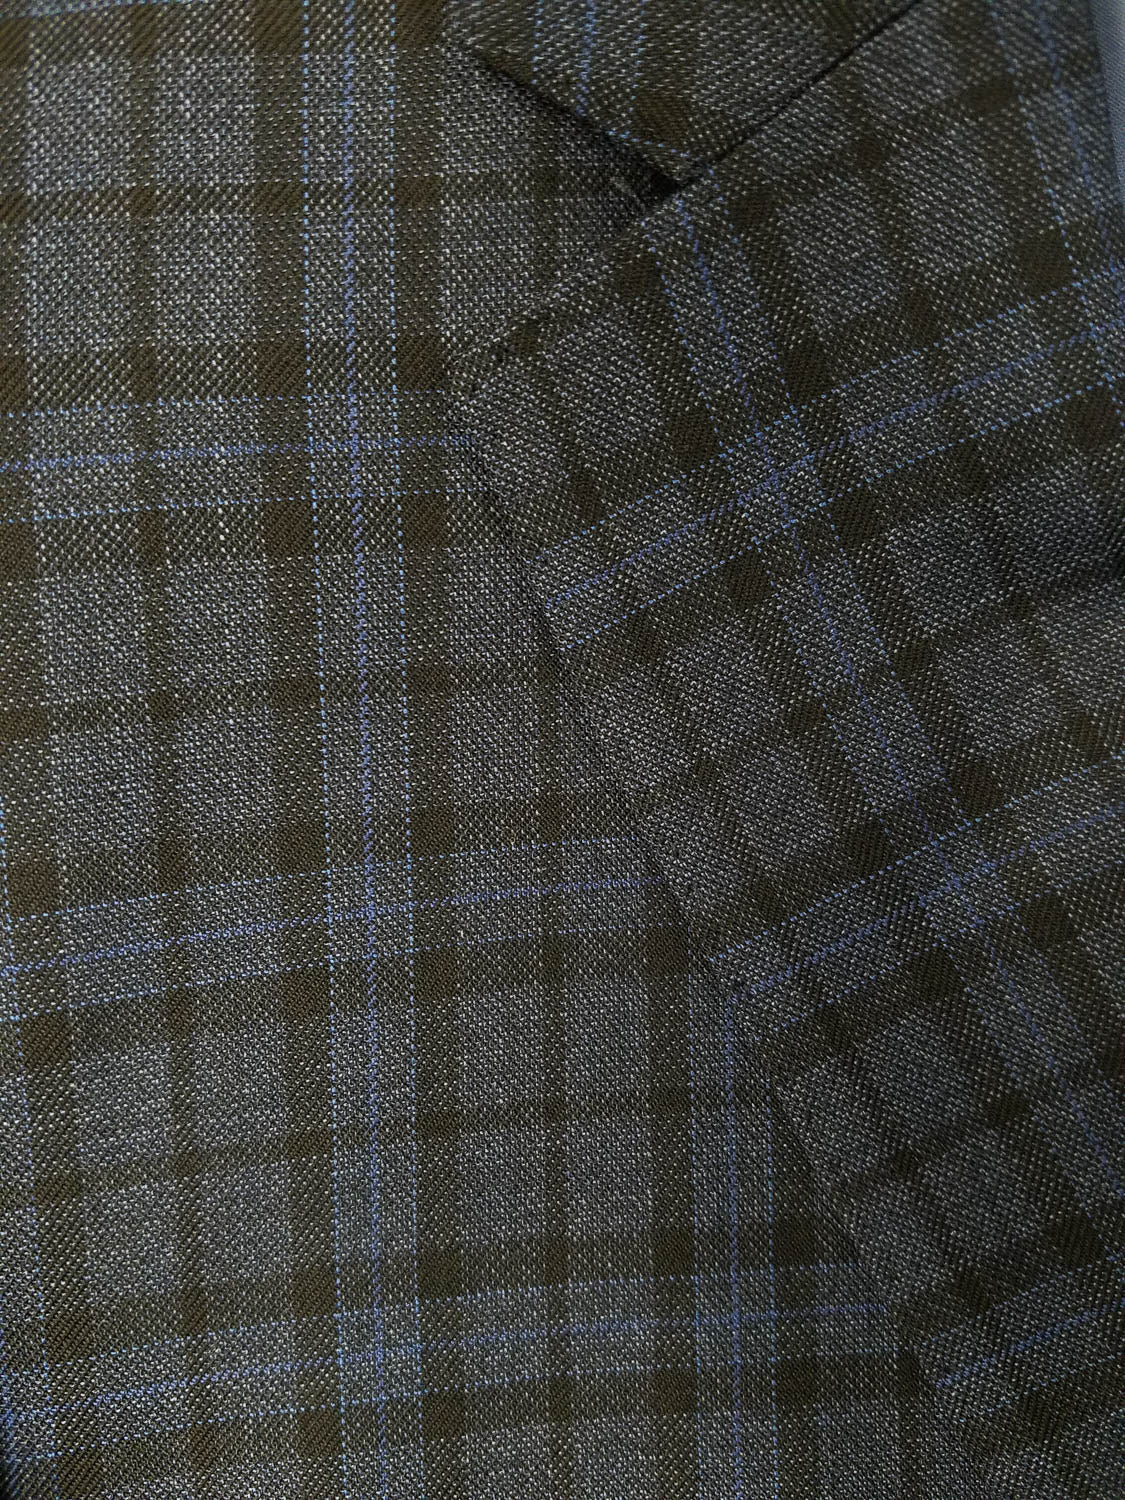 Rainwater's Luxury Collection Blue & Charcoal Plaid Super 150's Wool Sport Coat - Rainwater's Men's Clothing and Tuxedo Rental